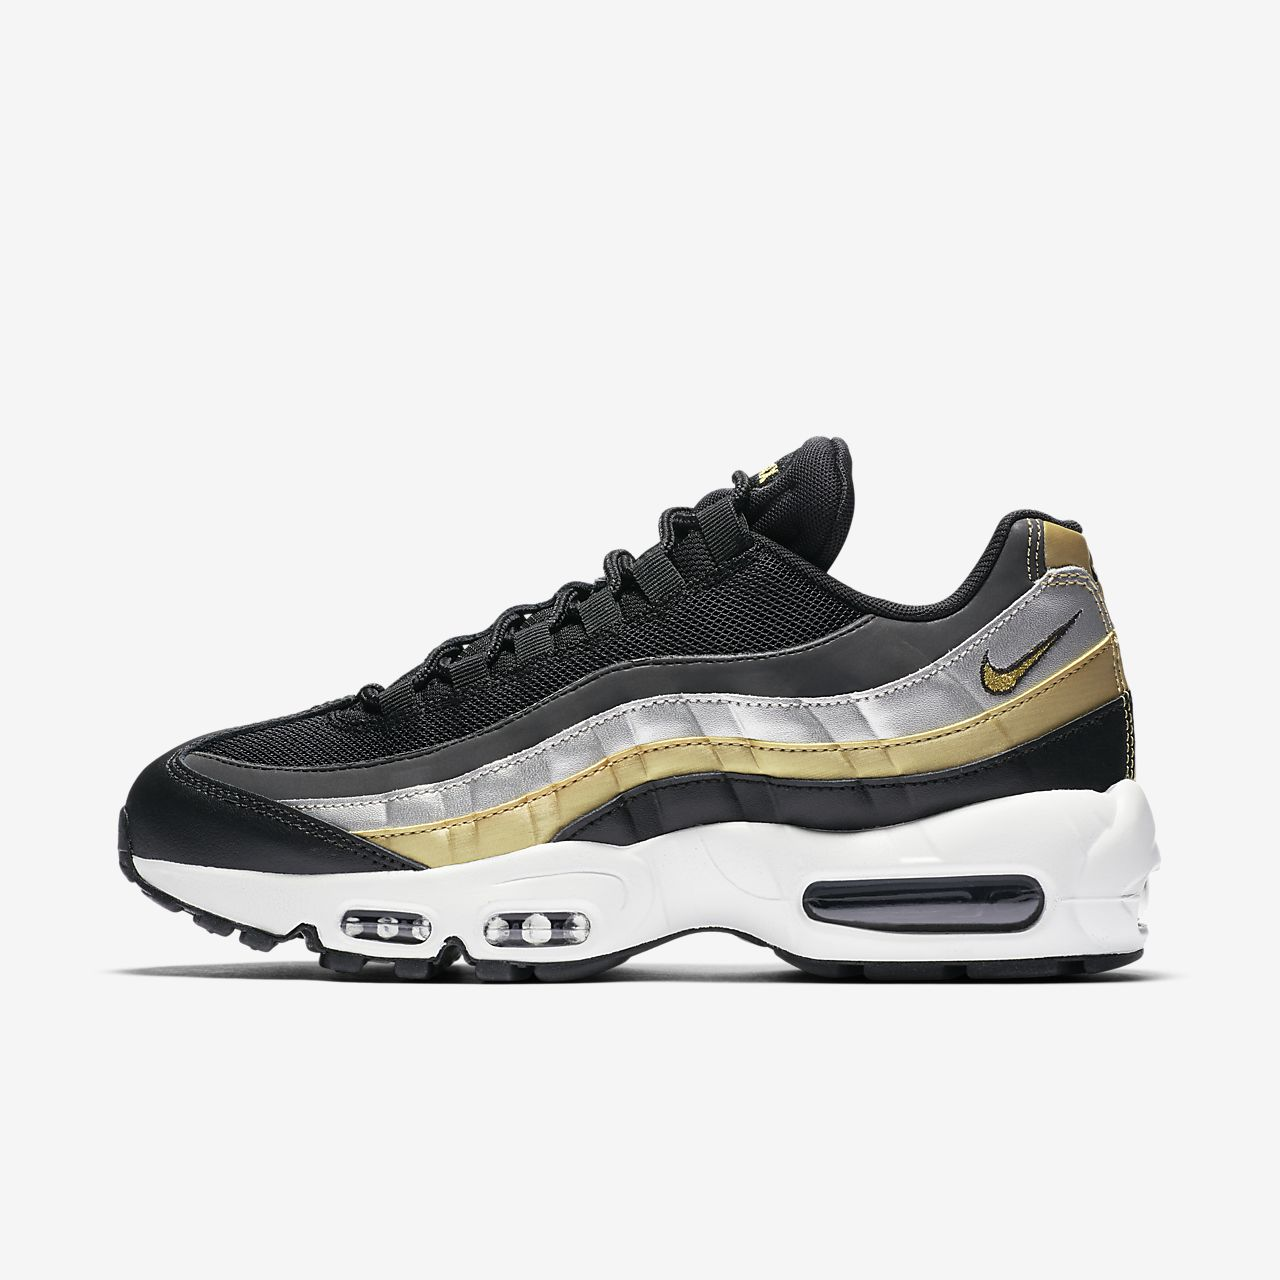 économiser e3d3b dba89 Nike Air Max 95 Lux Metallic Women's Shoe